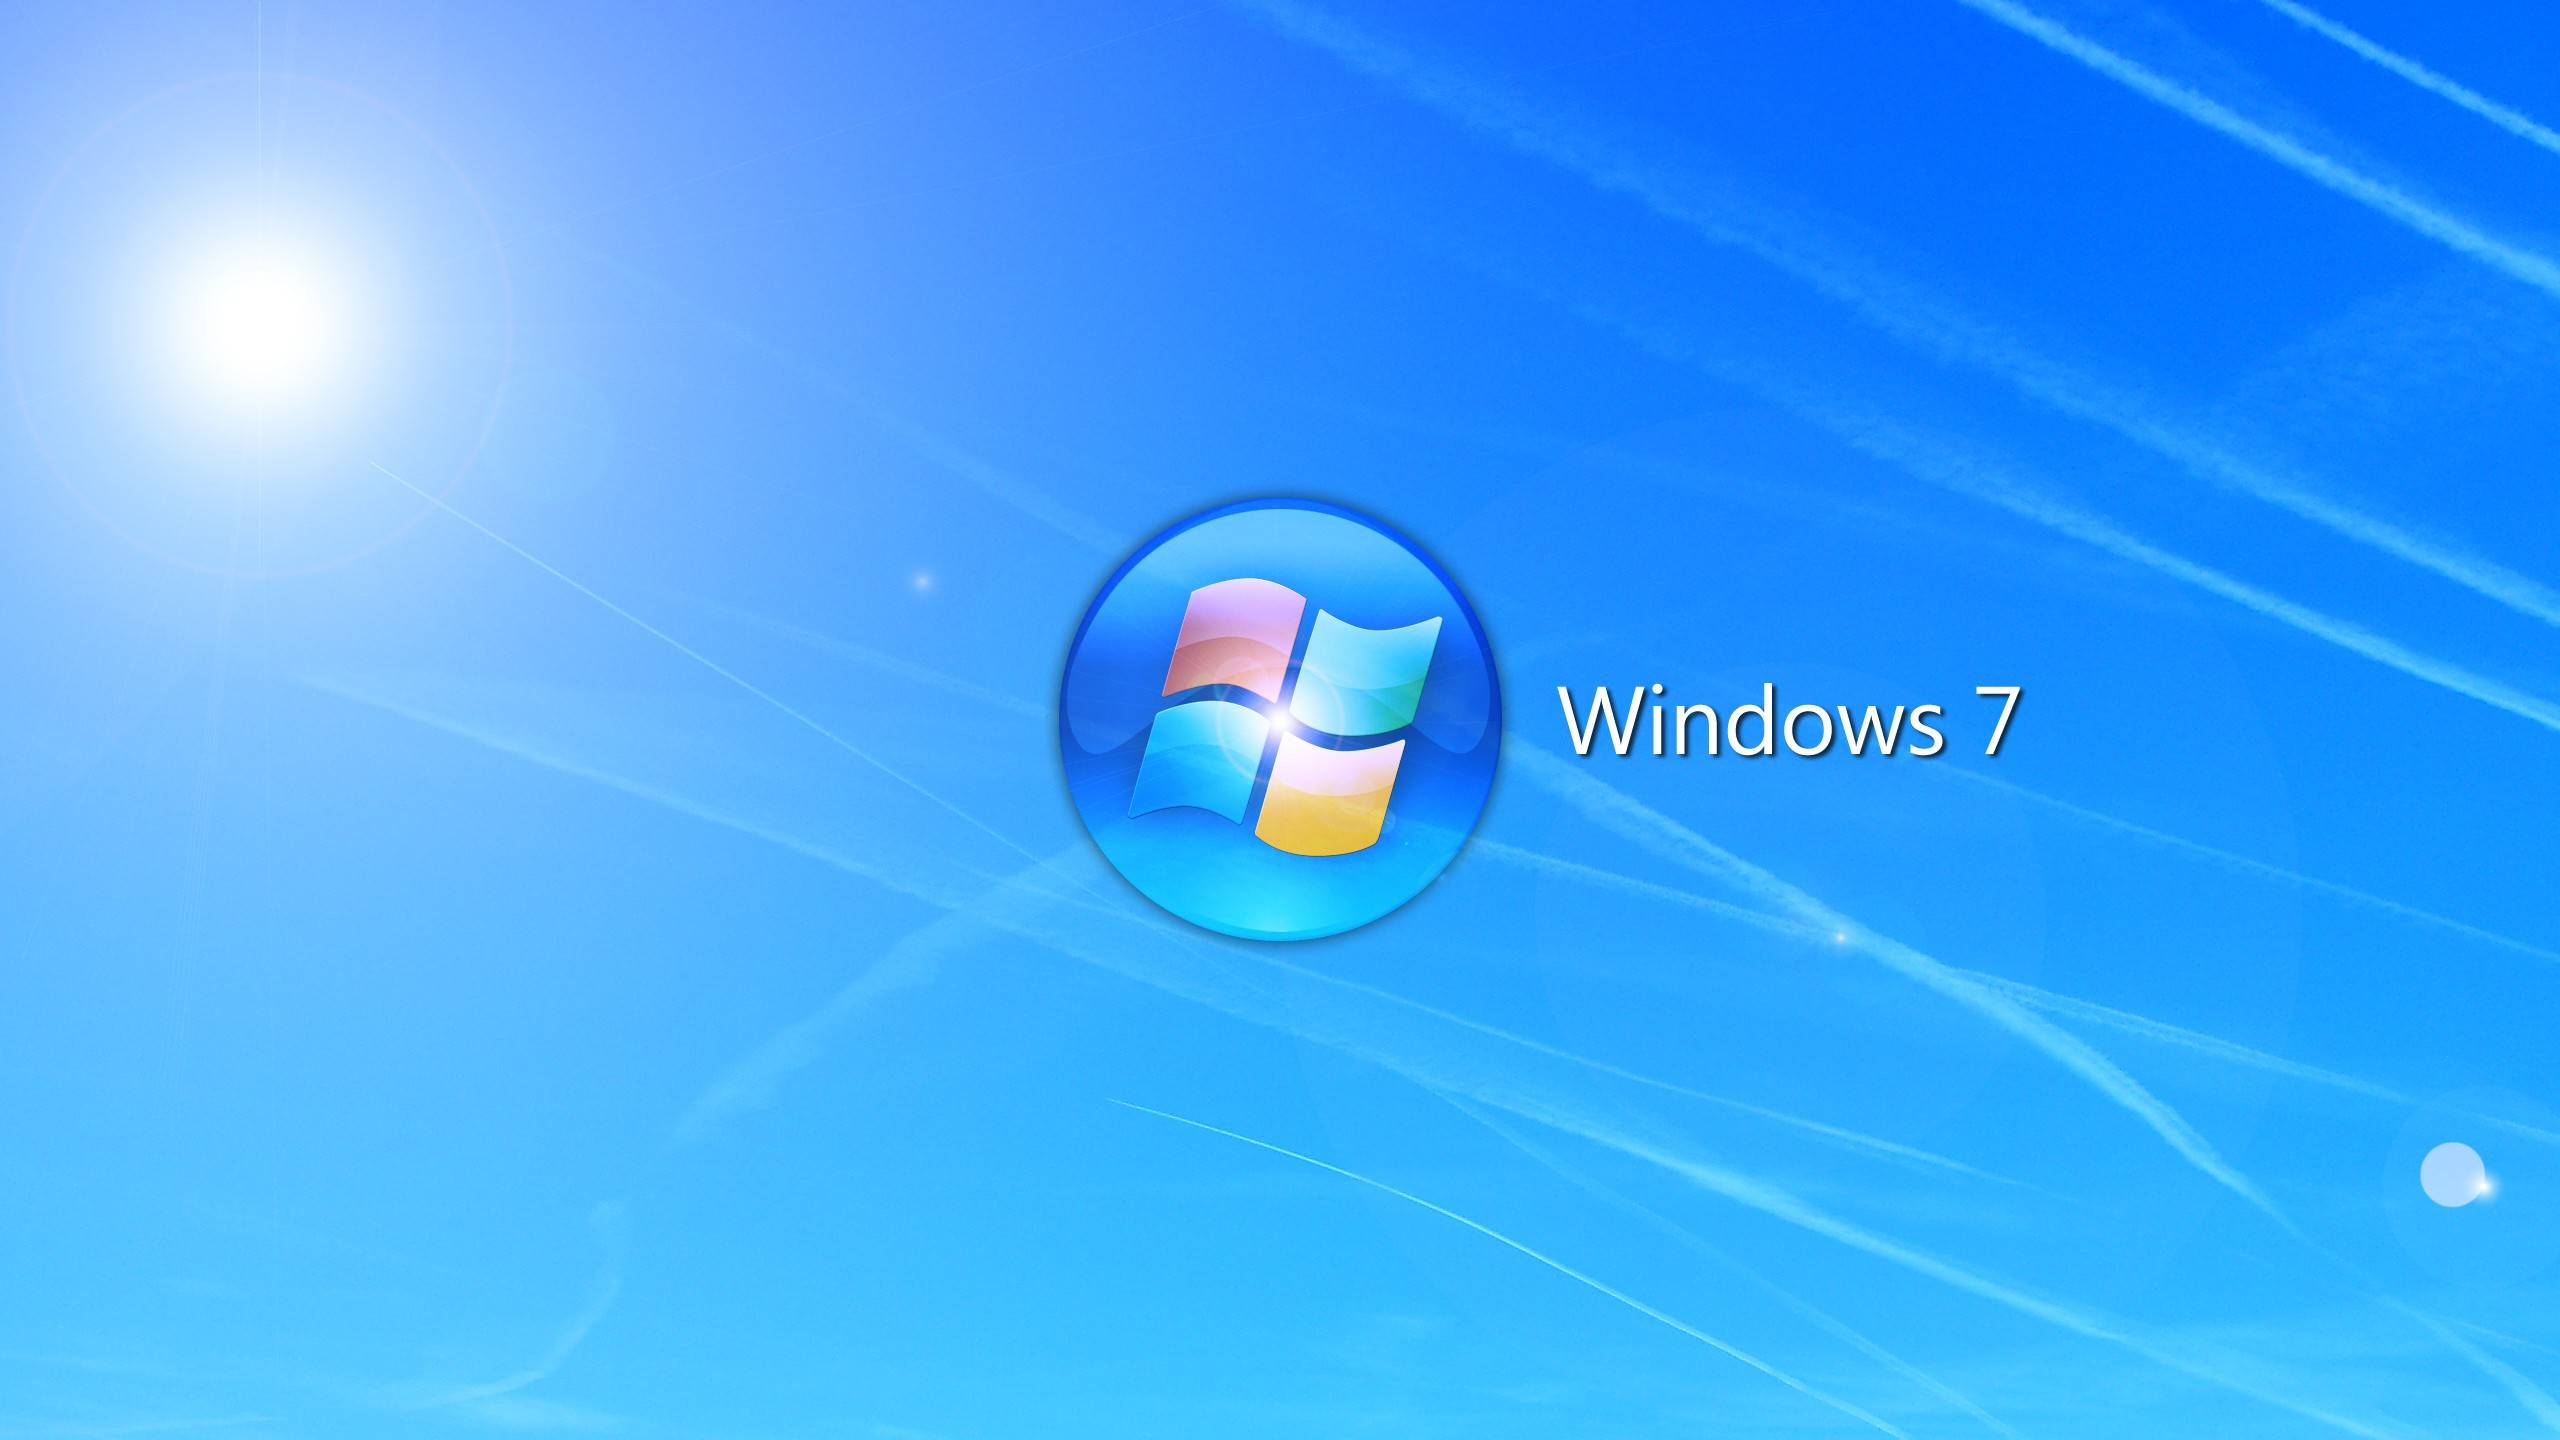 Windows 7 25601440 Wallpaper 1117693 2560x1440